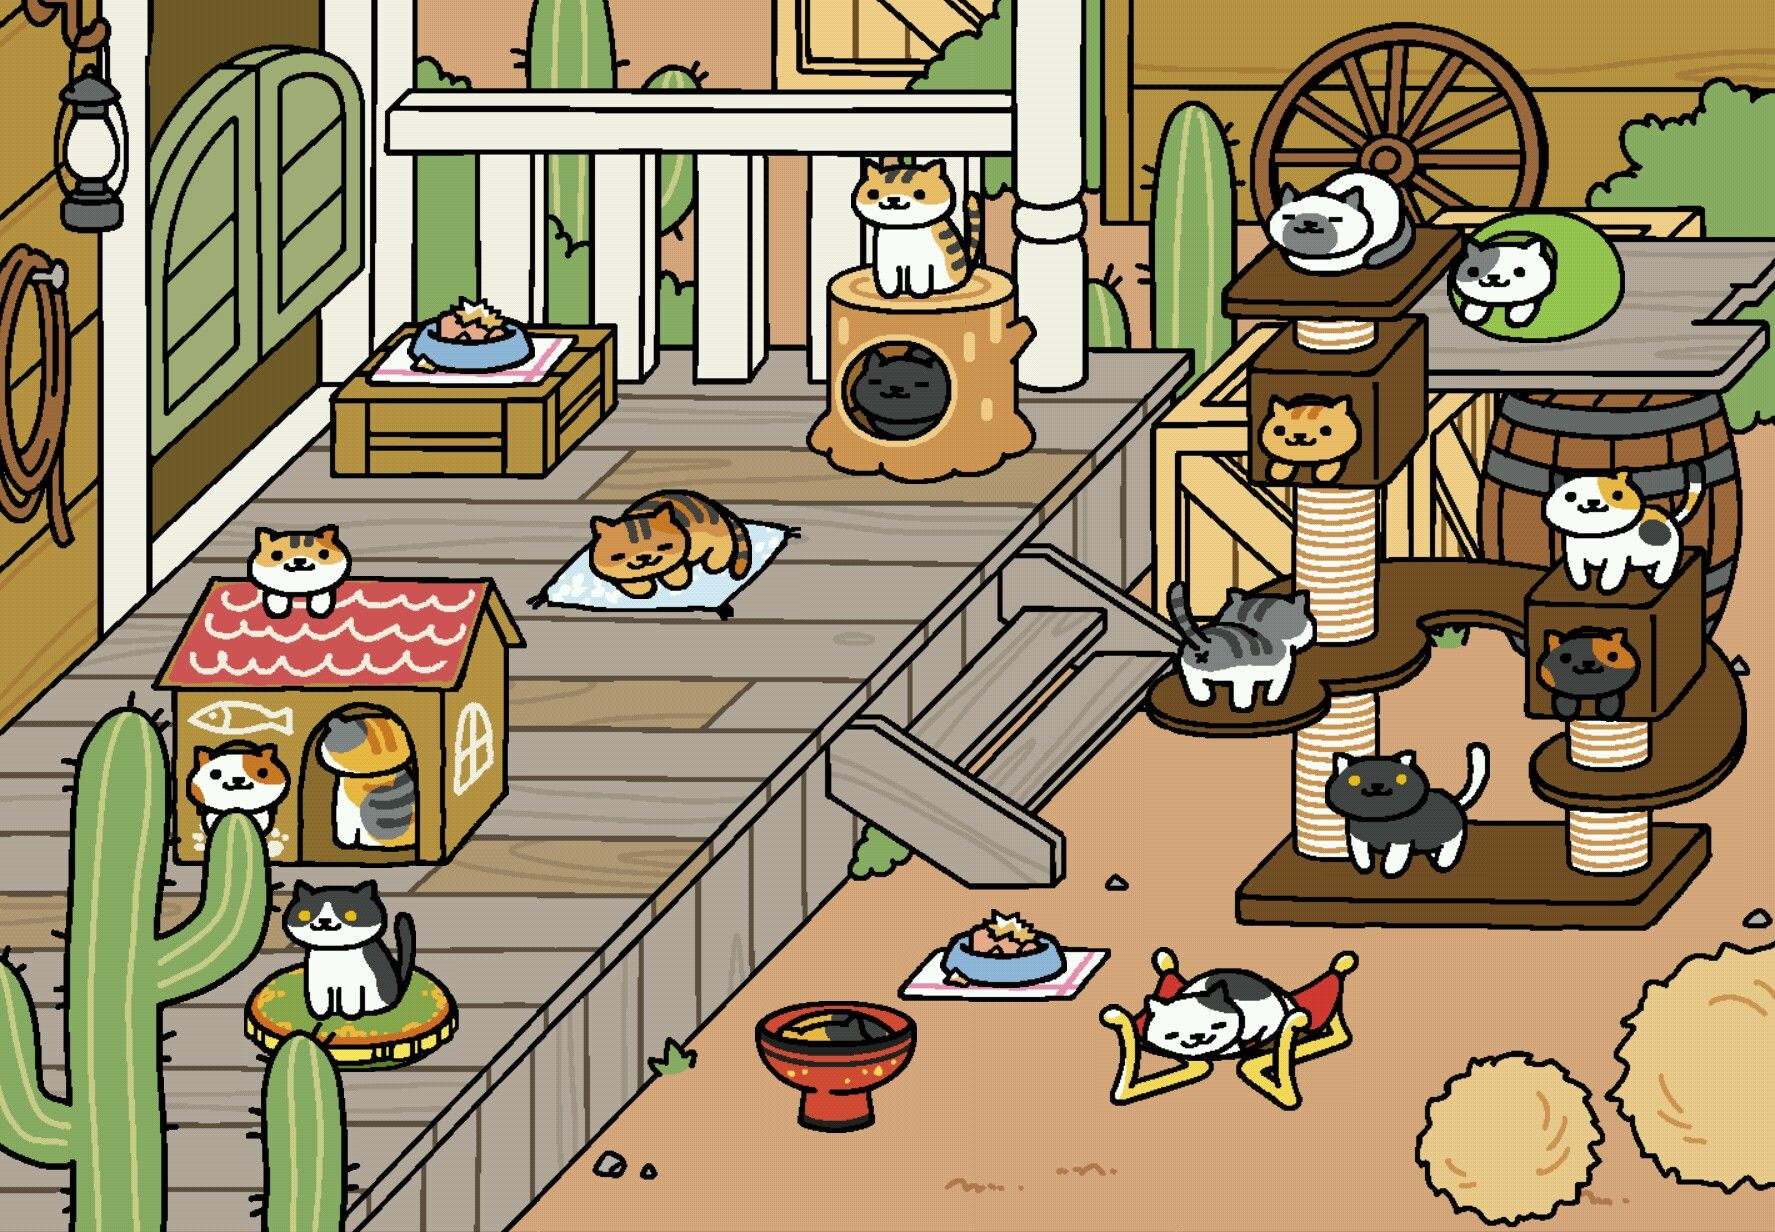 83 Best Neko Atsume Images